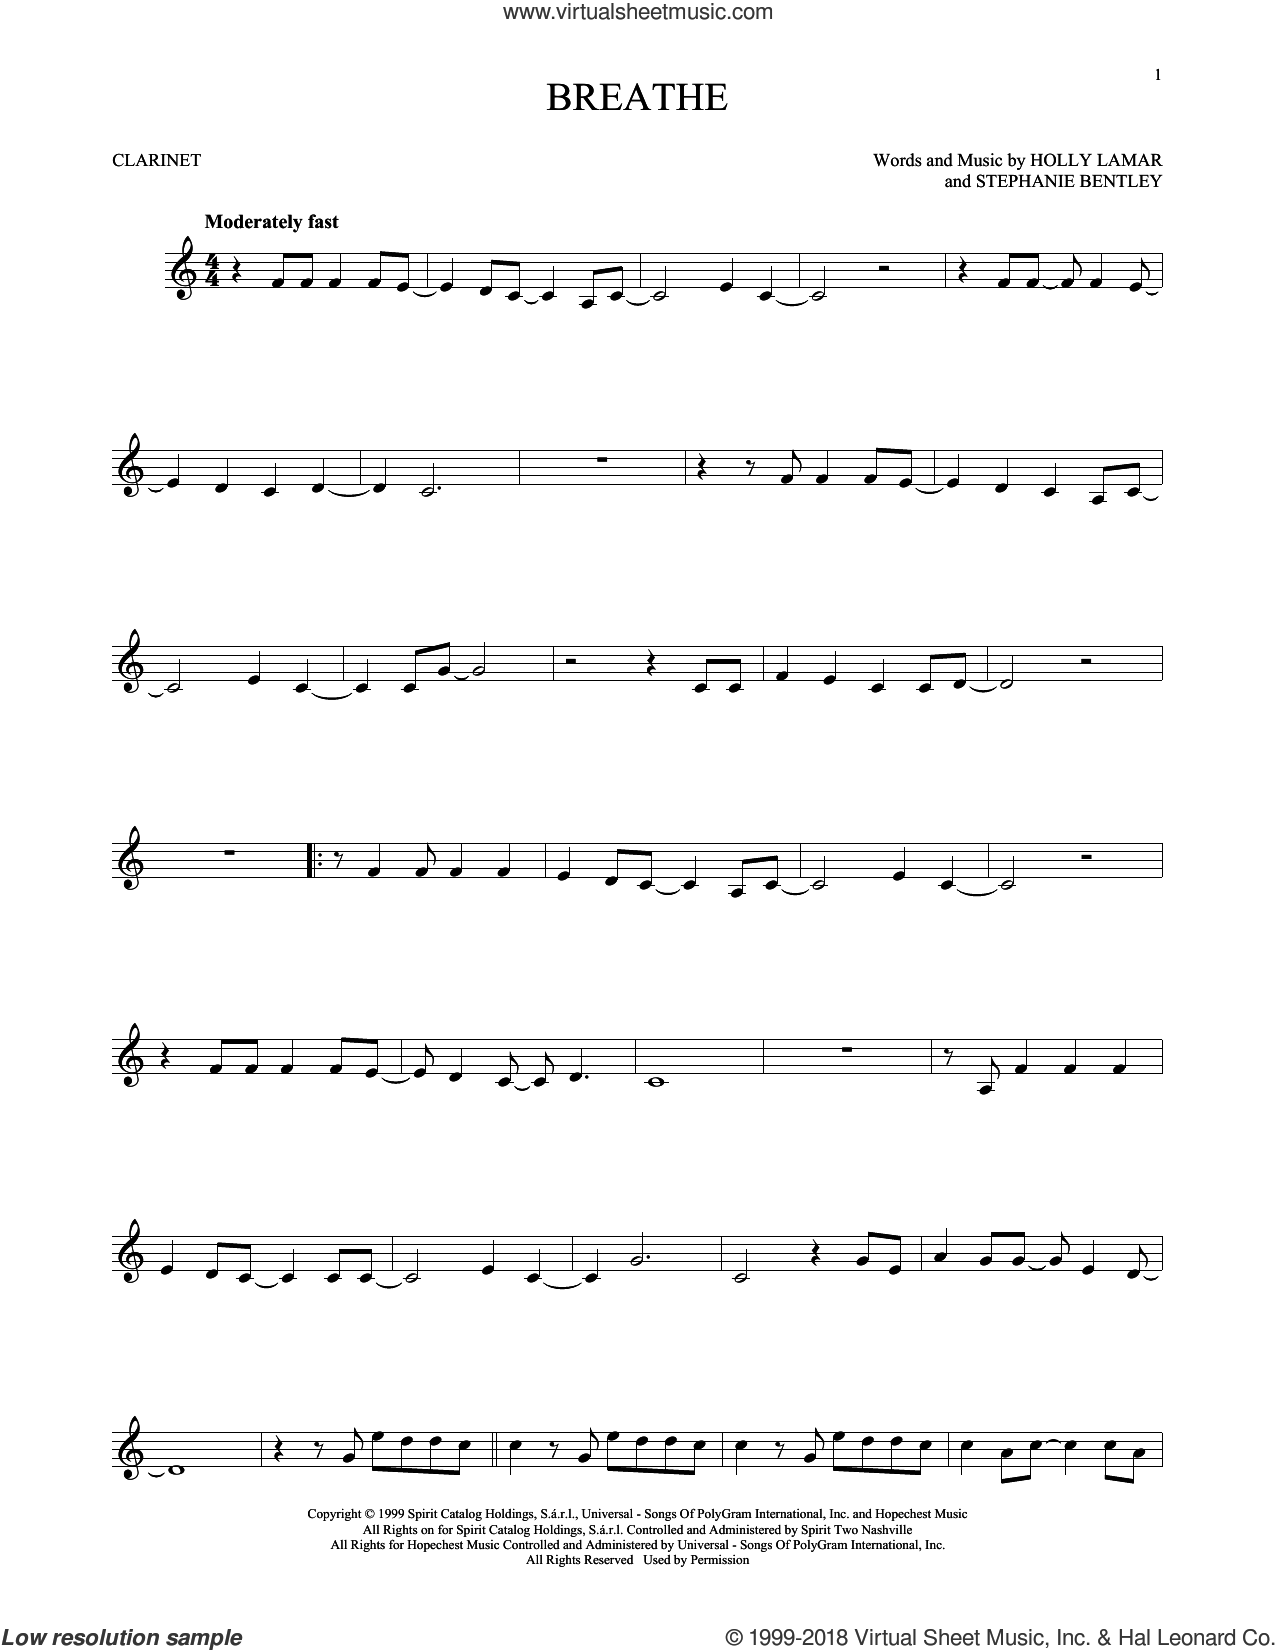 Breathe sheet music for clarinet solo by Faith Hill, Holly Lamar and Stephanie Bentley, intermediate skill level